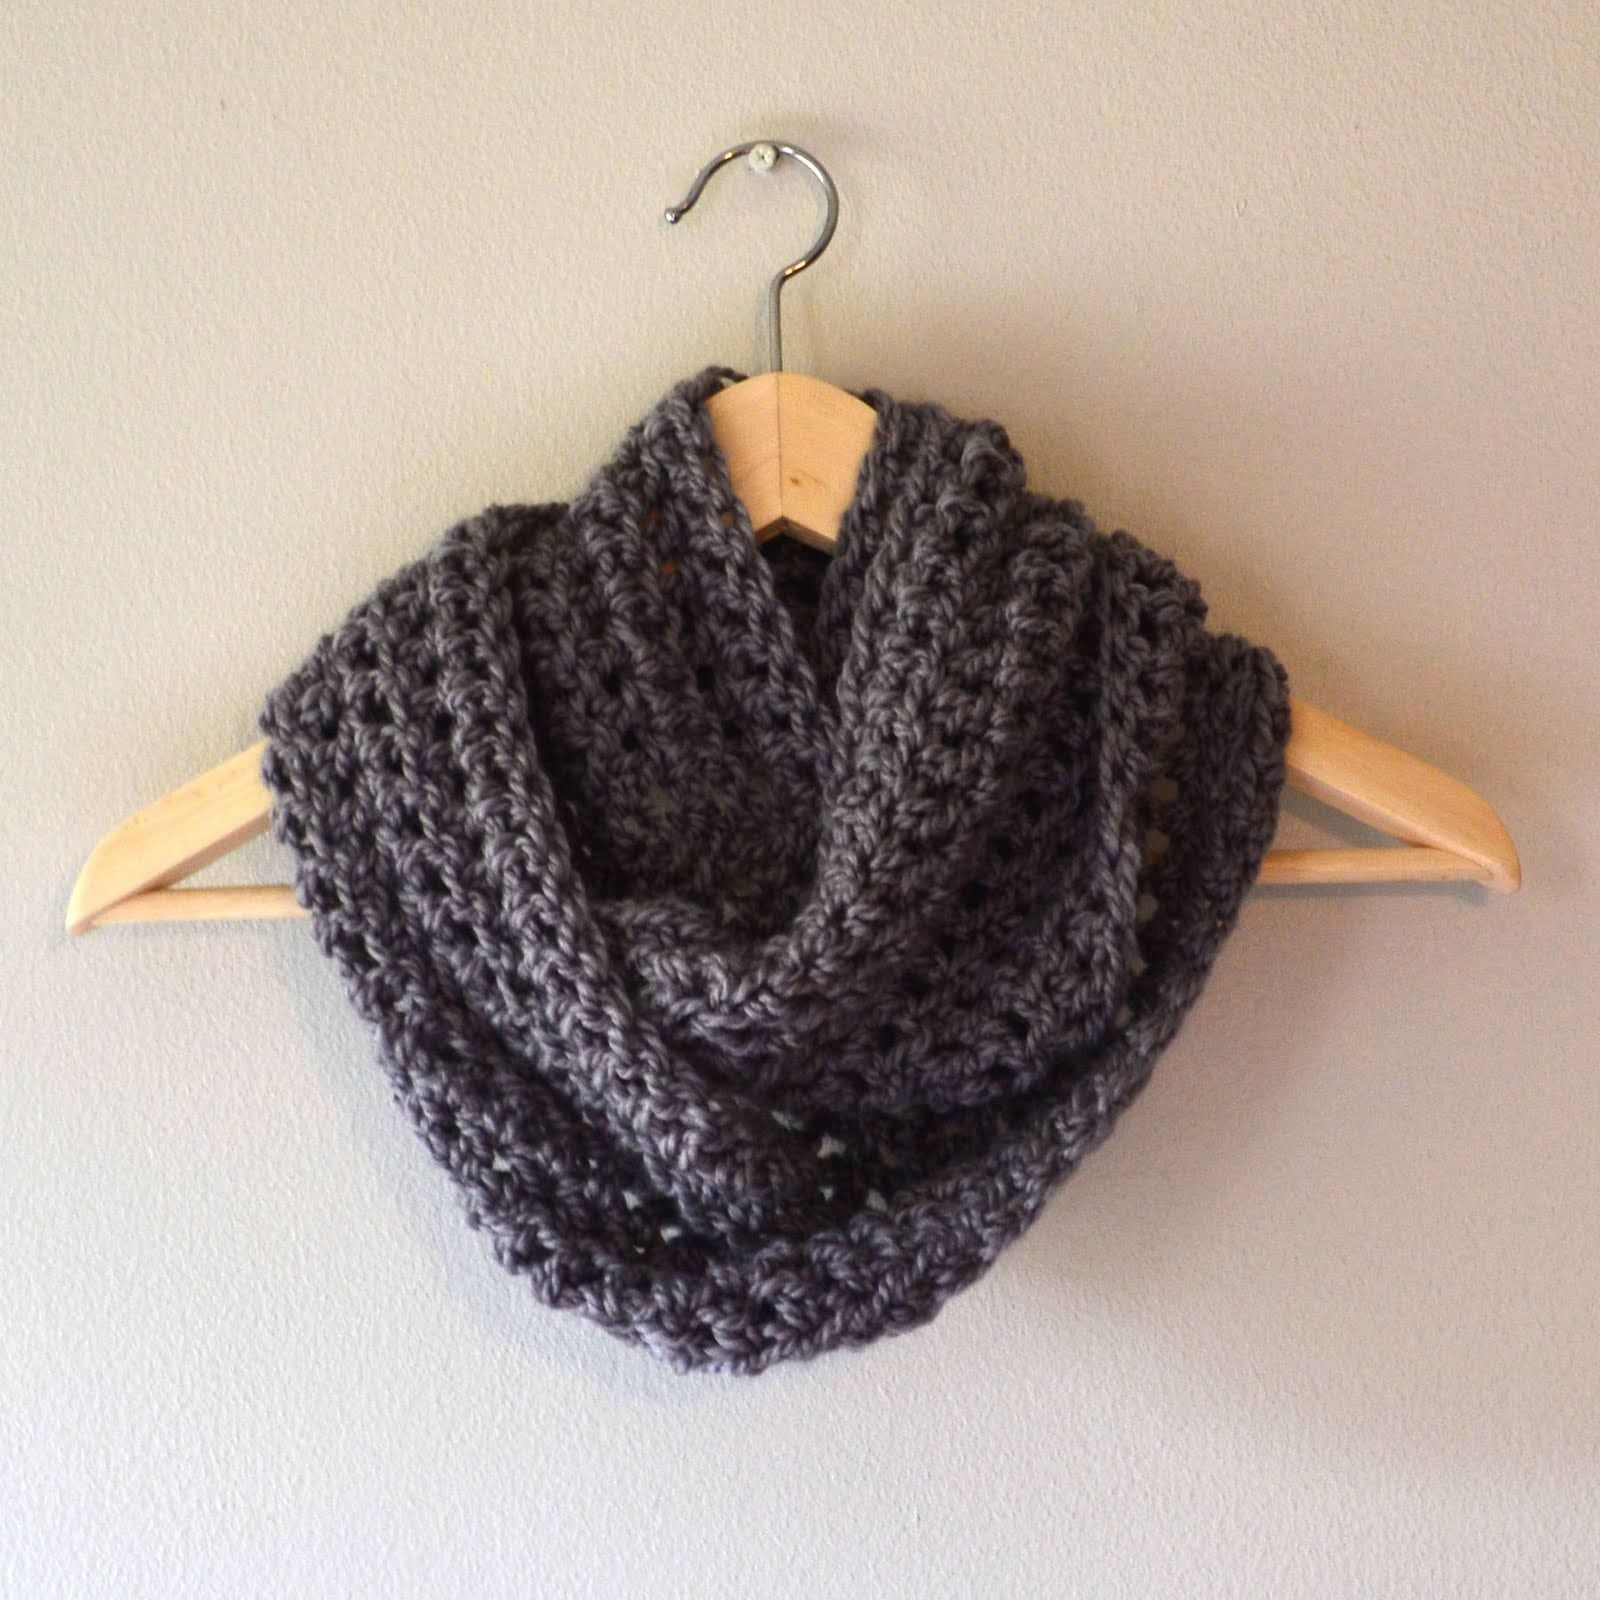 This cowl was an accidenthence the name i didnt intend to crochet in color accidental cowl free pattern either i learn how to crochet or convince a crocheter to make on for me bankloansurffo Choice Image